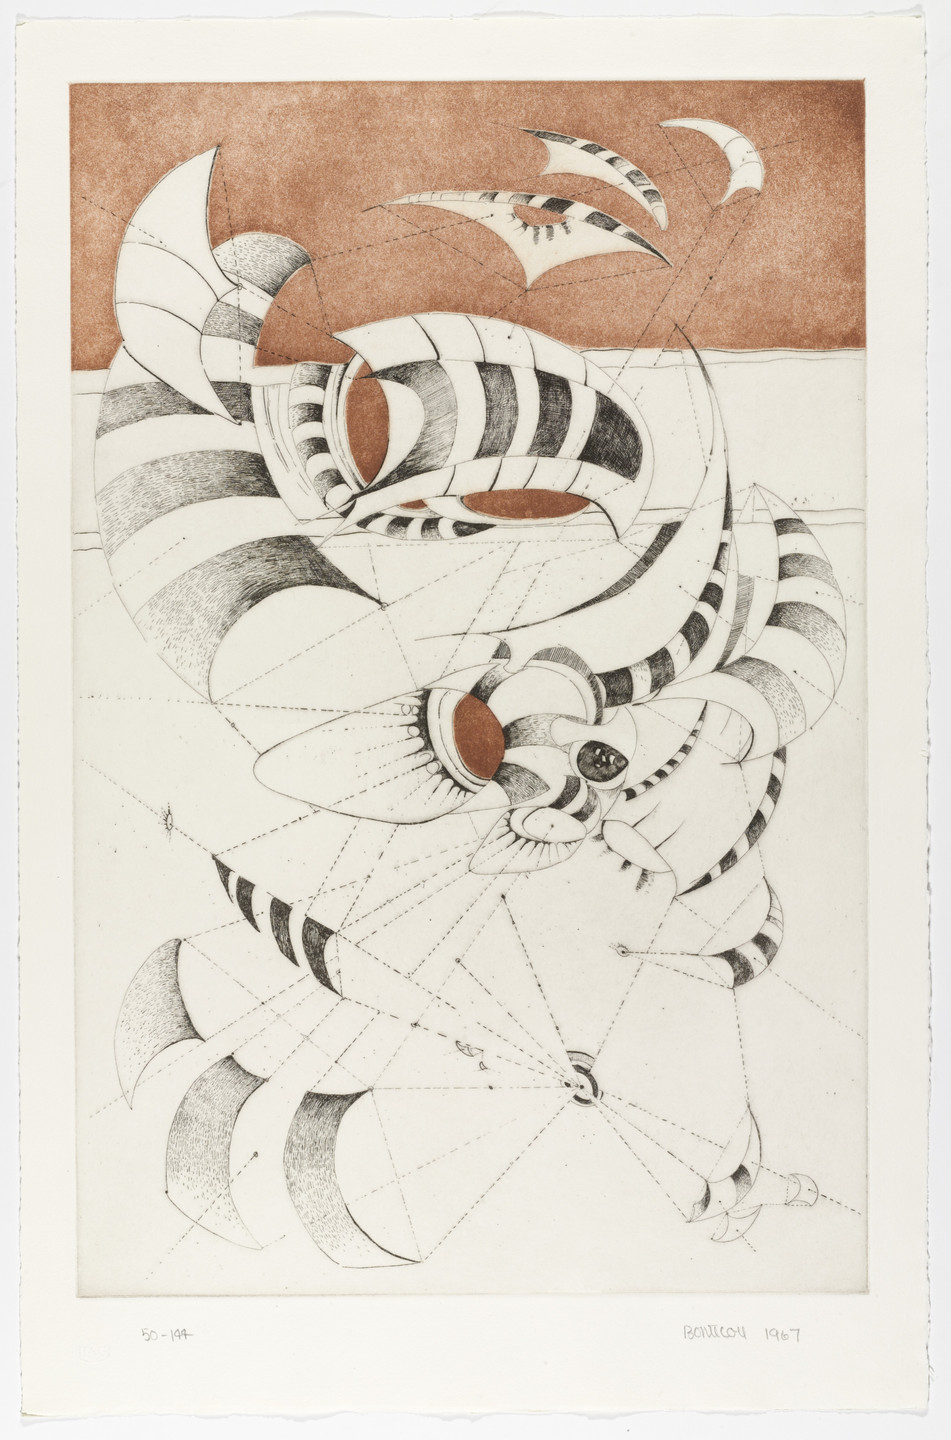 Lee Bontecou. Untitled from National Collection of Fine Arts Portfolio. 1967, published 1968